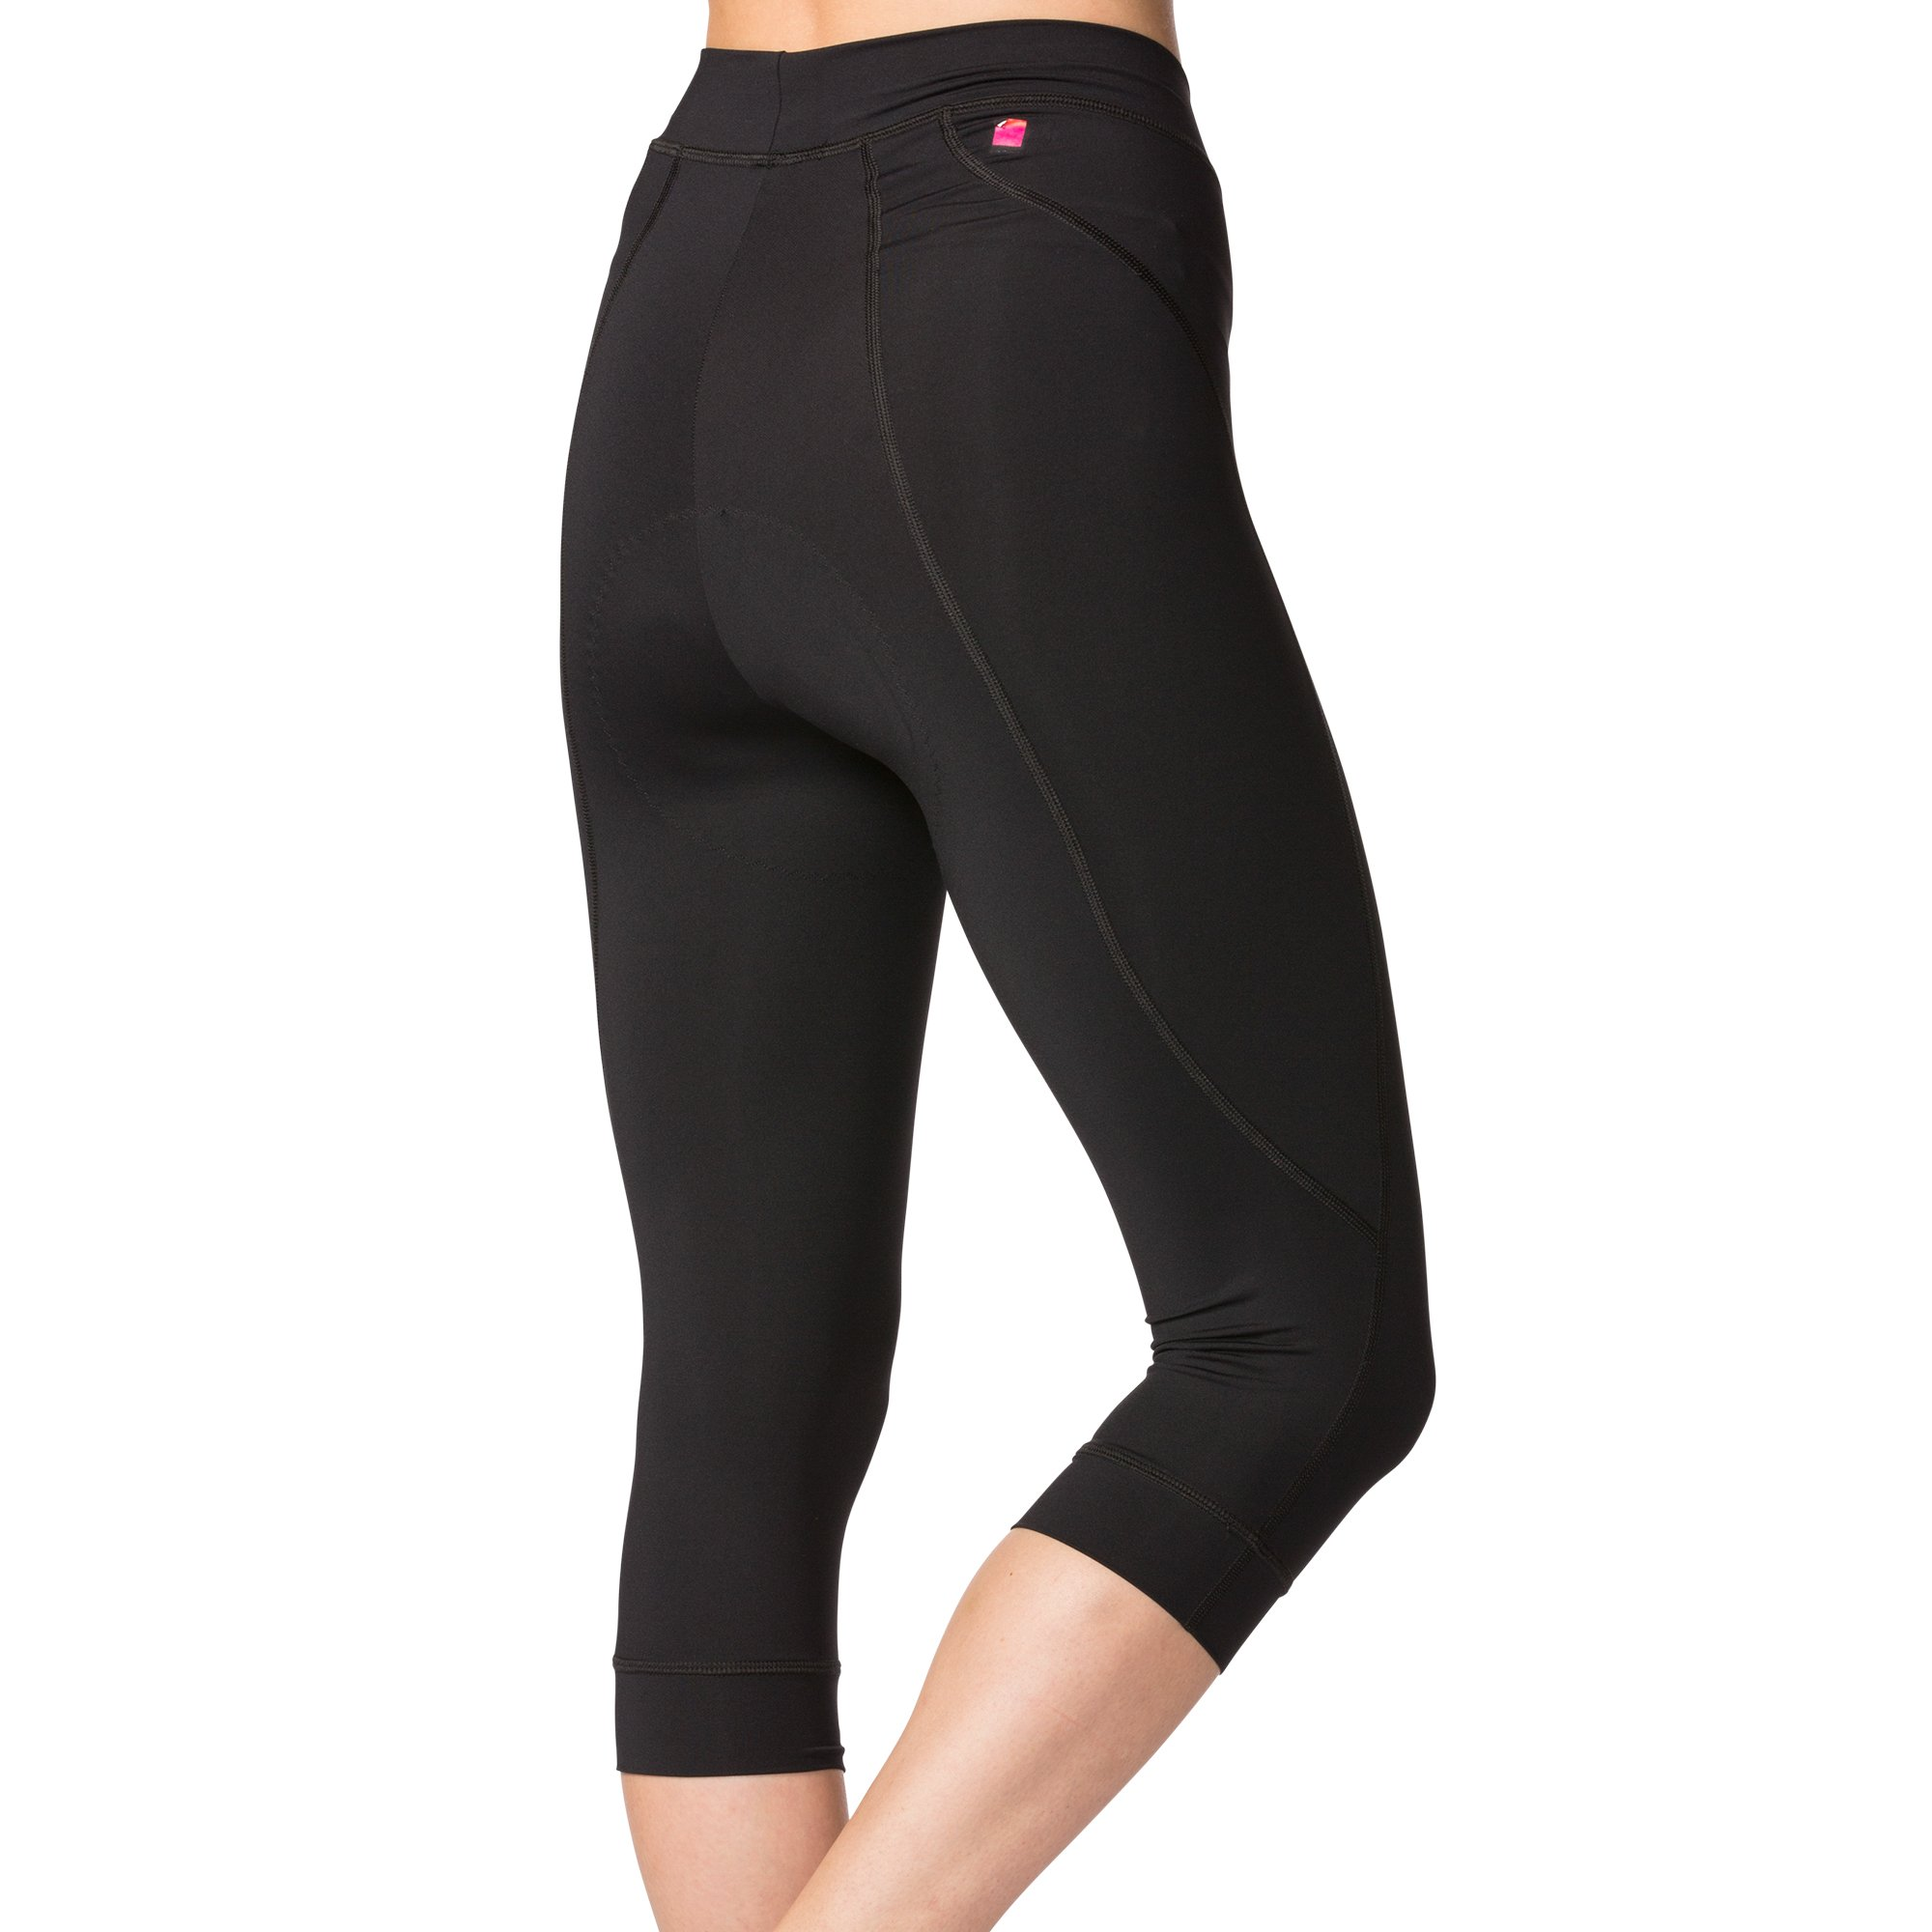 Terry Highly Rated Breakaway Performance Cycling Knickers For Women - Improved For 2018 With More Padded Fleet Chamois - Black - Small by Terry (Image #2)